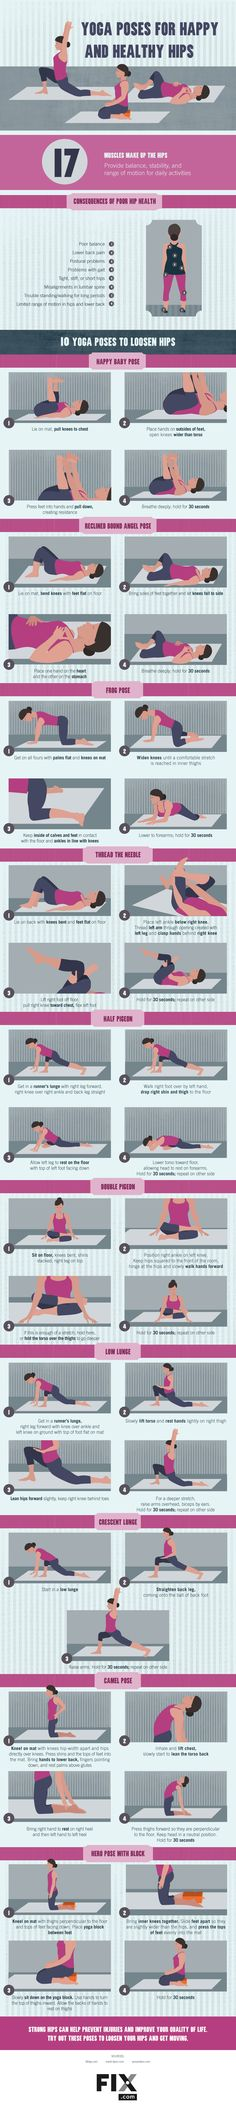 Yoga Poses for Happy and Healthy Hips #infographic                                                                                                                                                                                 More